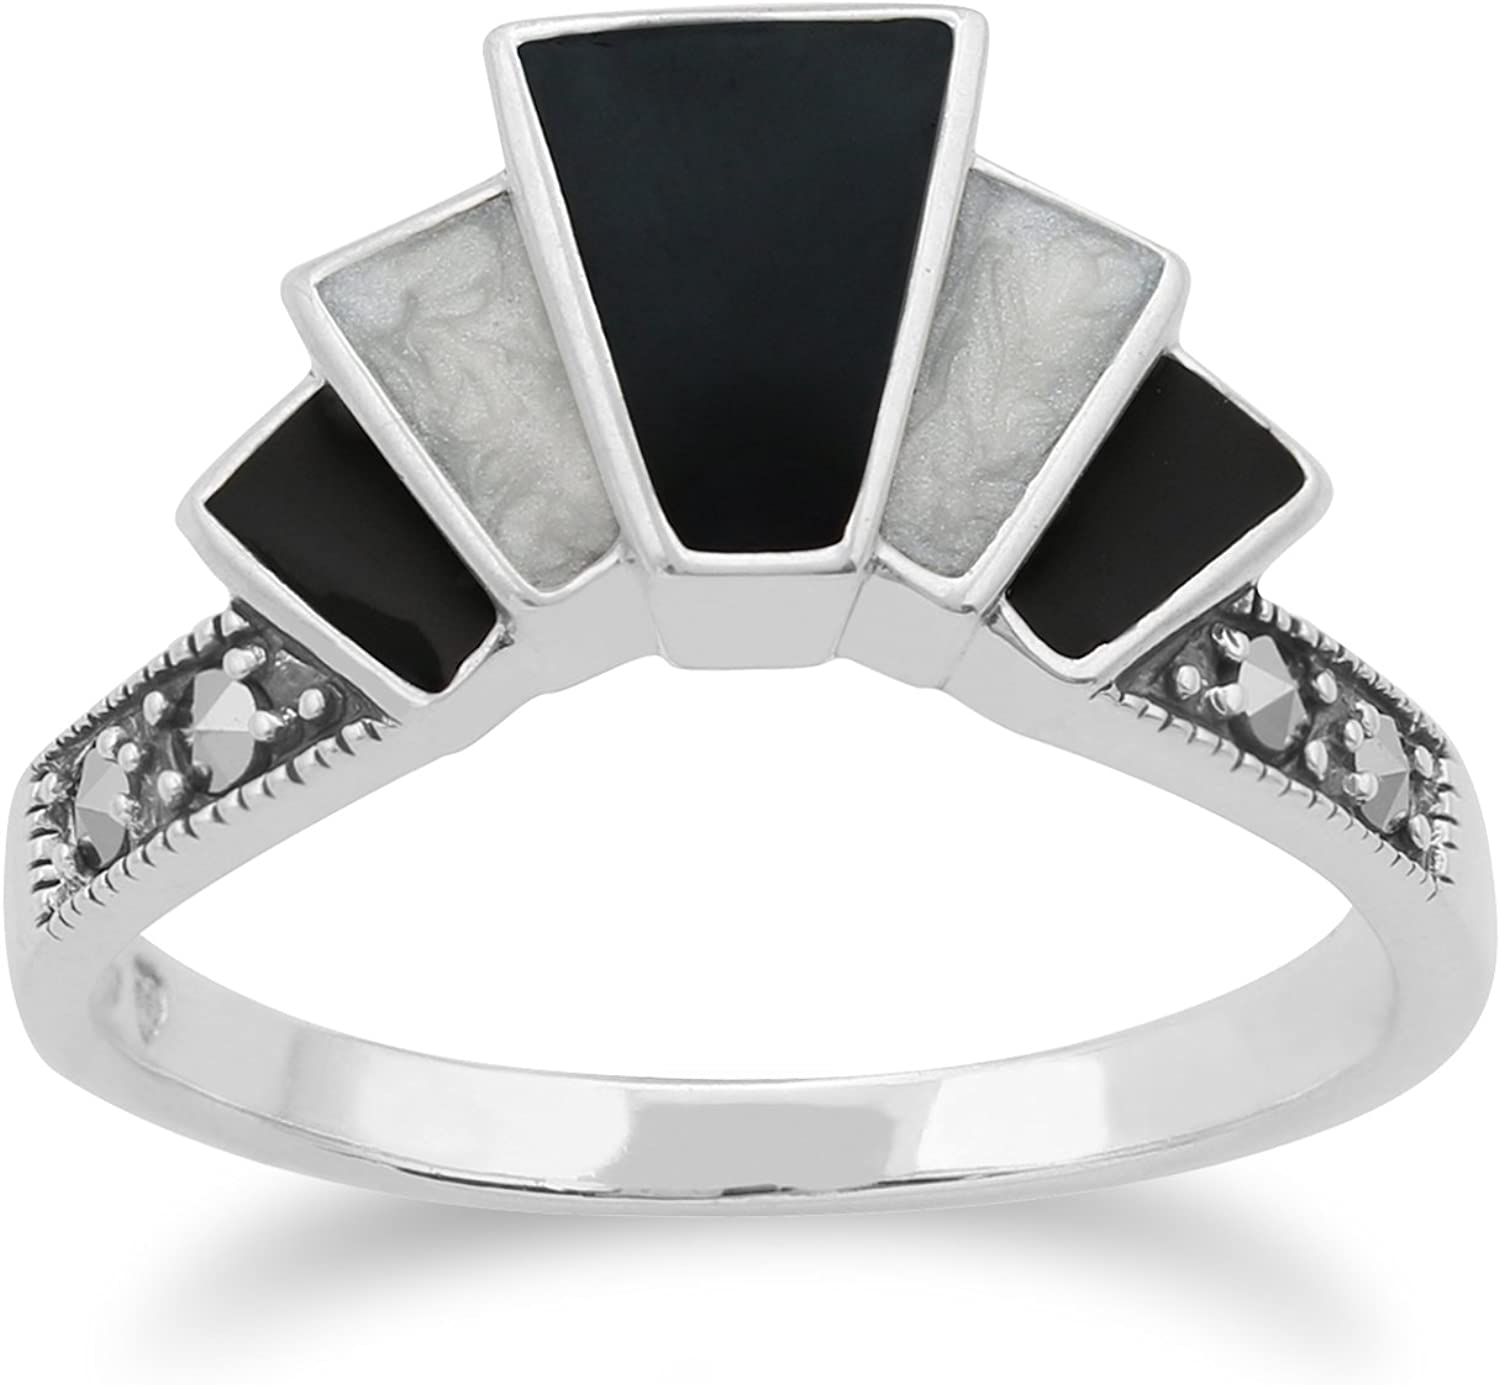 Gemondo Art Deco Ring, 925 Sterling Silver Art Deco Black and White Enamel & Marcasite Ring